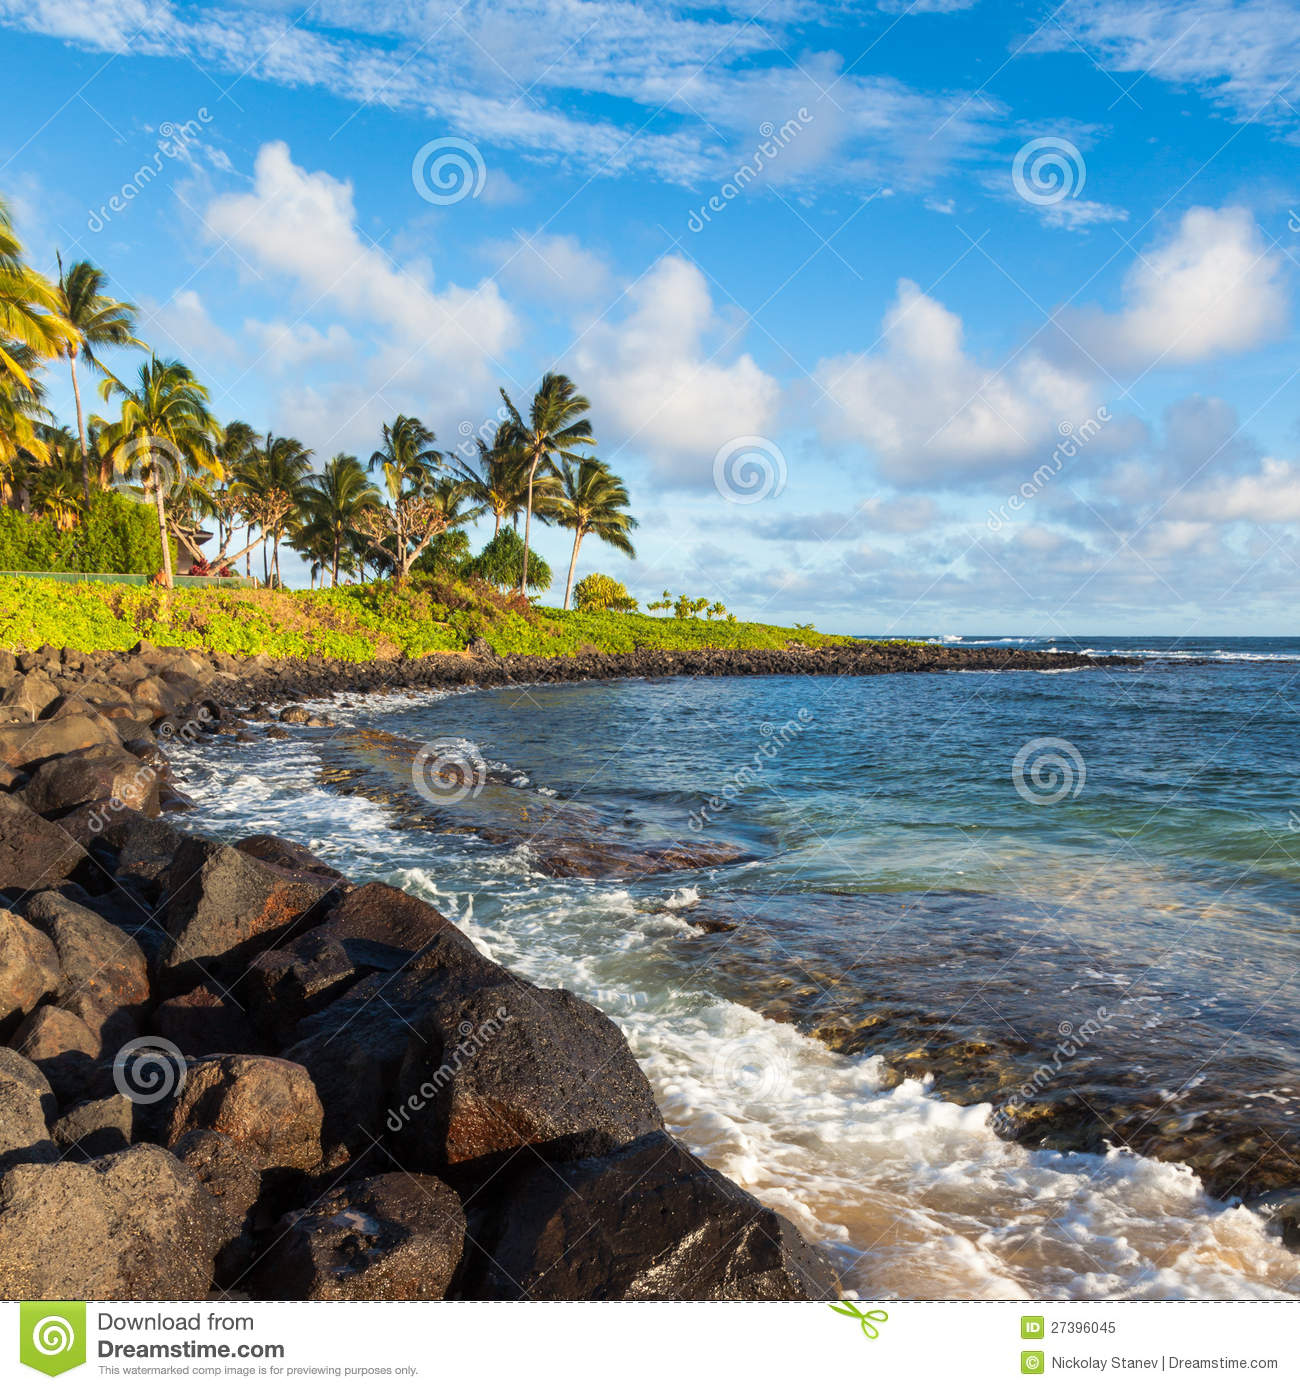 Kauai Beaches: Beautiful Kauai Beach Royalty Free Stock Photo